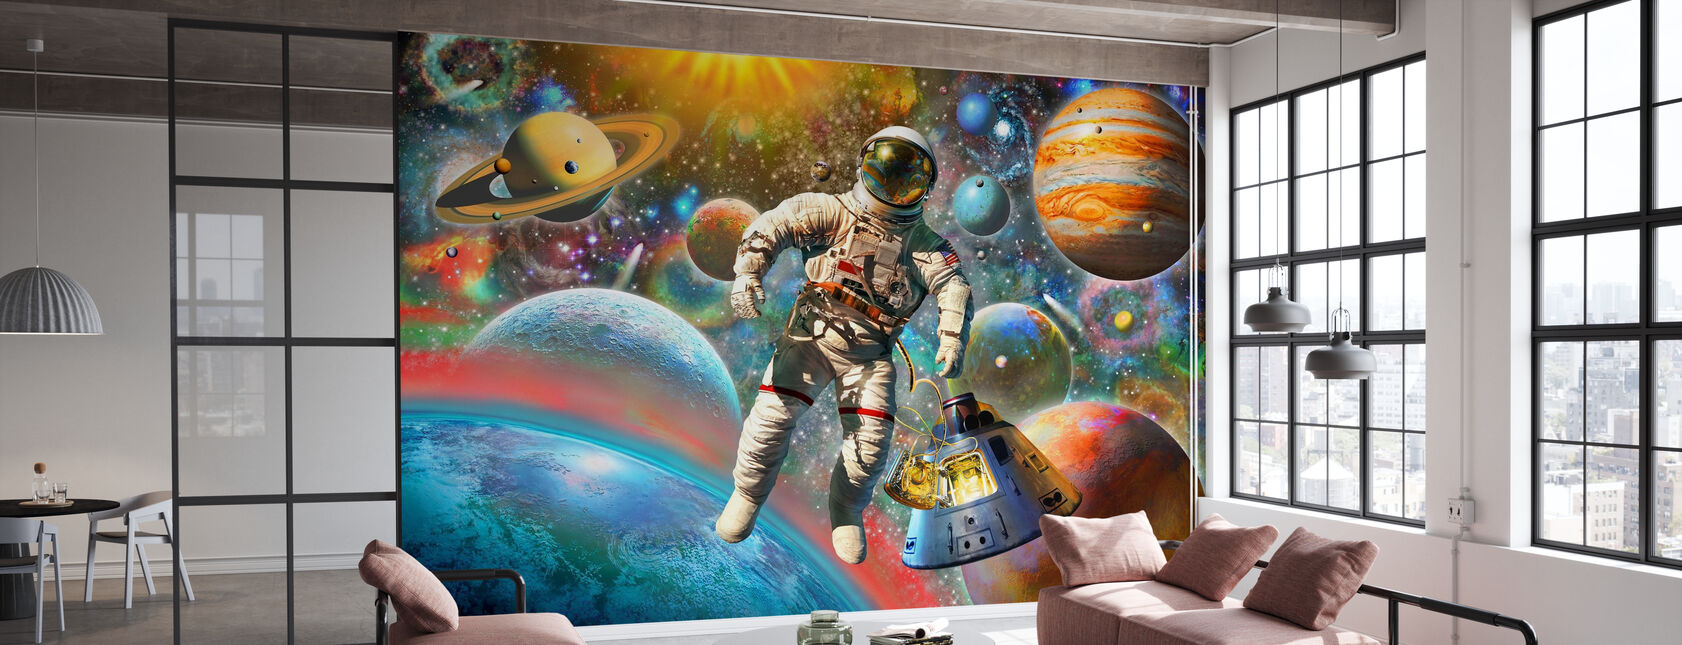 Astronaut Floating in Space - Wallpaper - Office